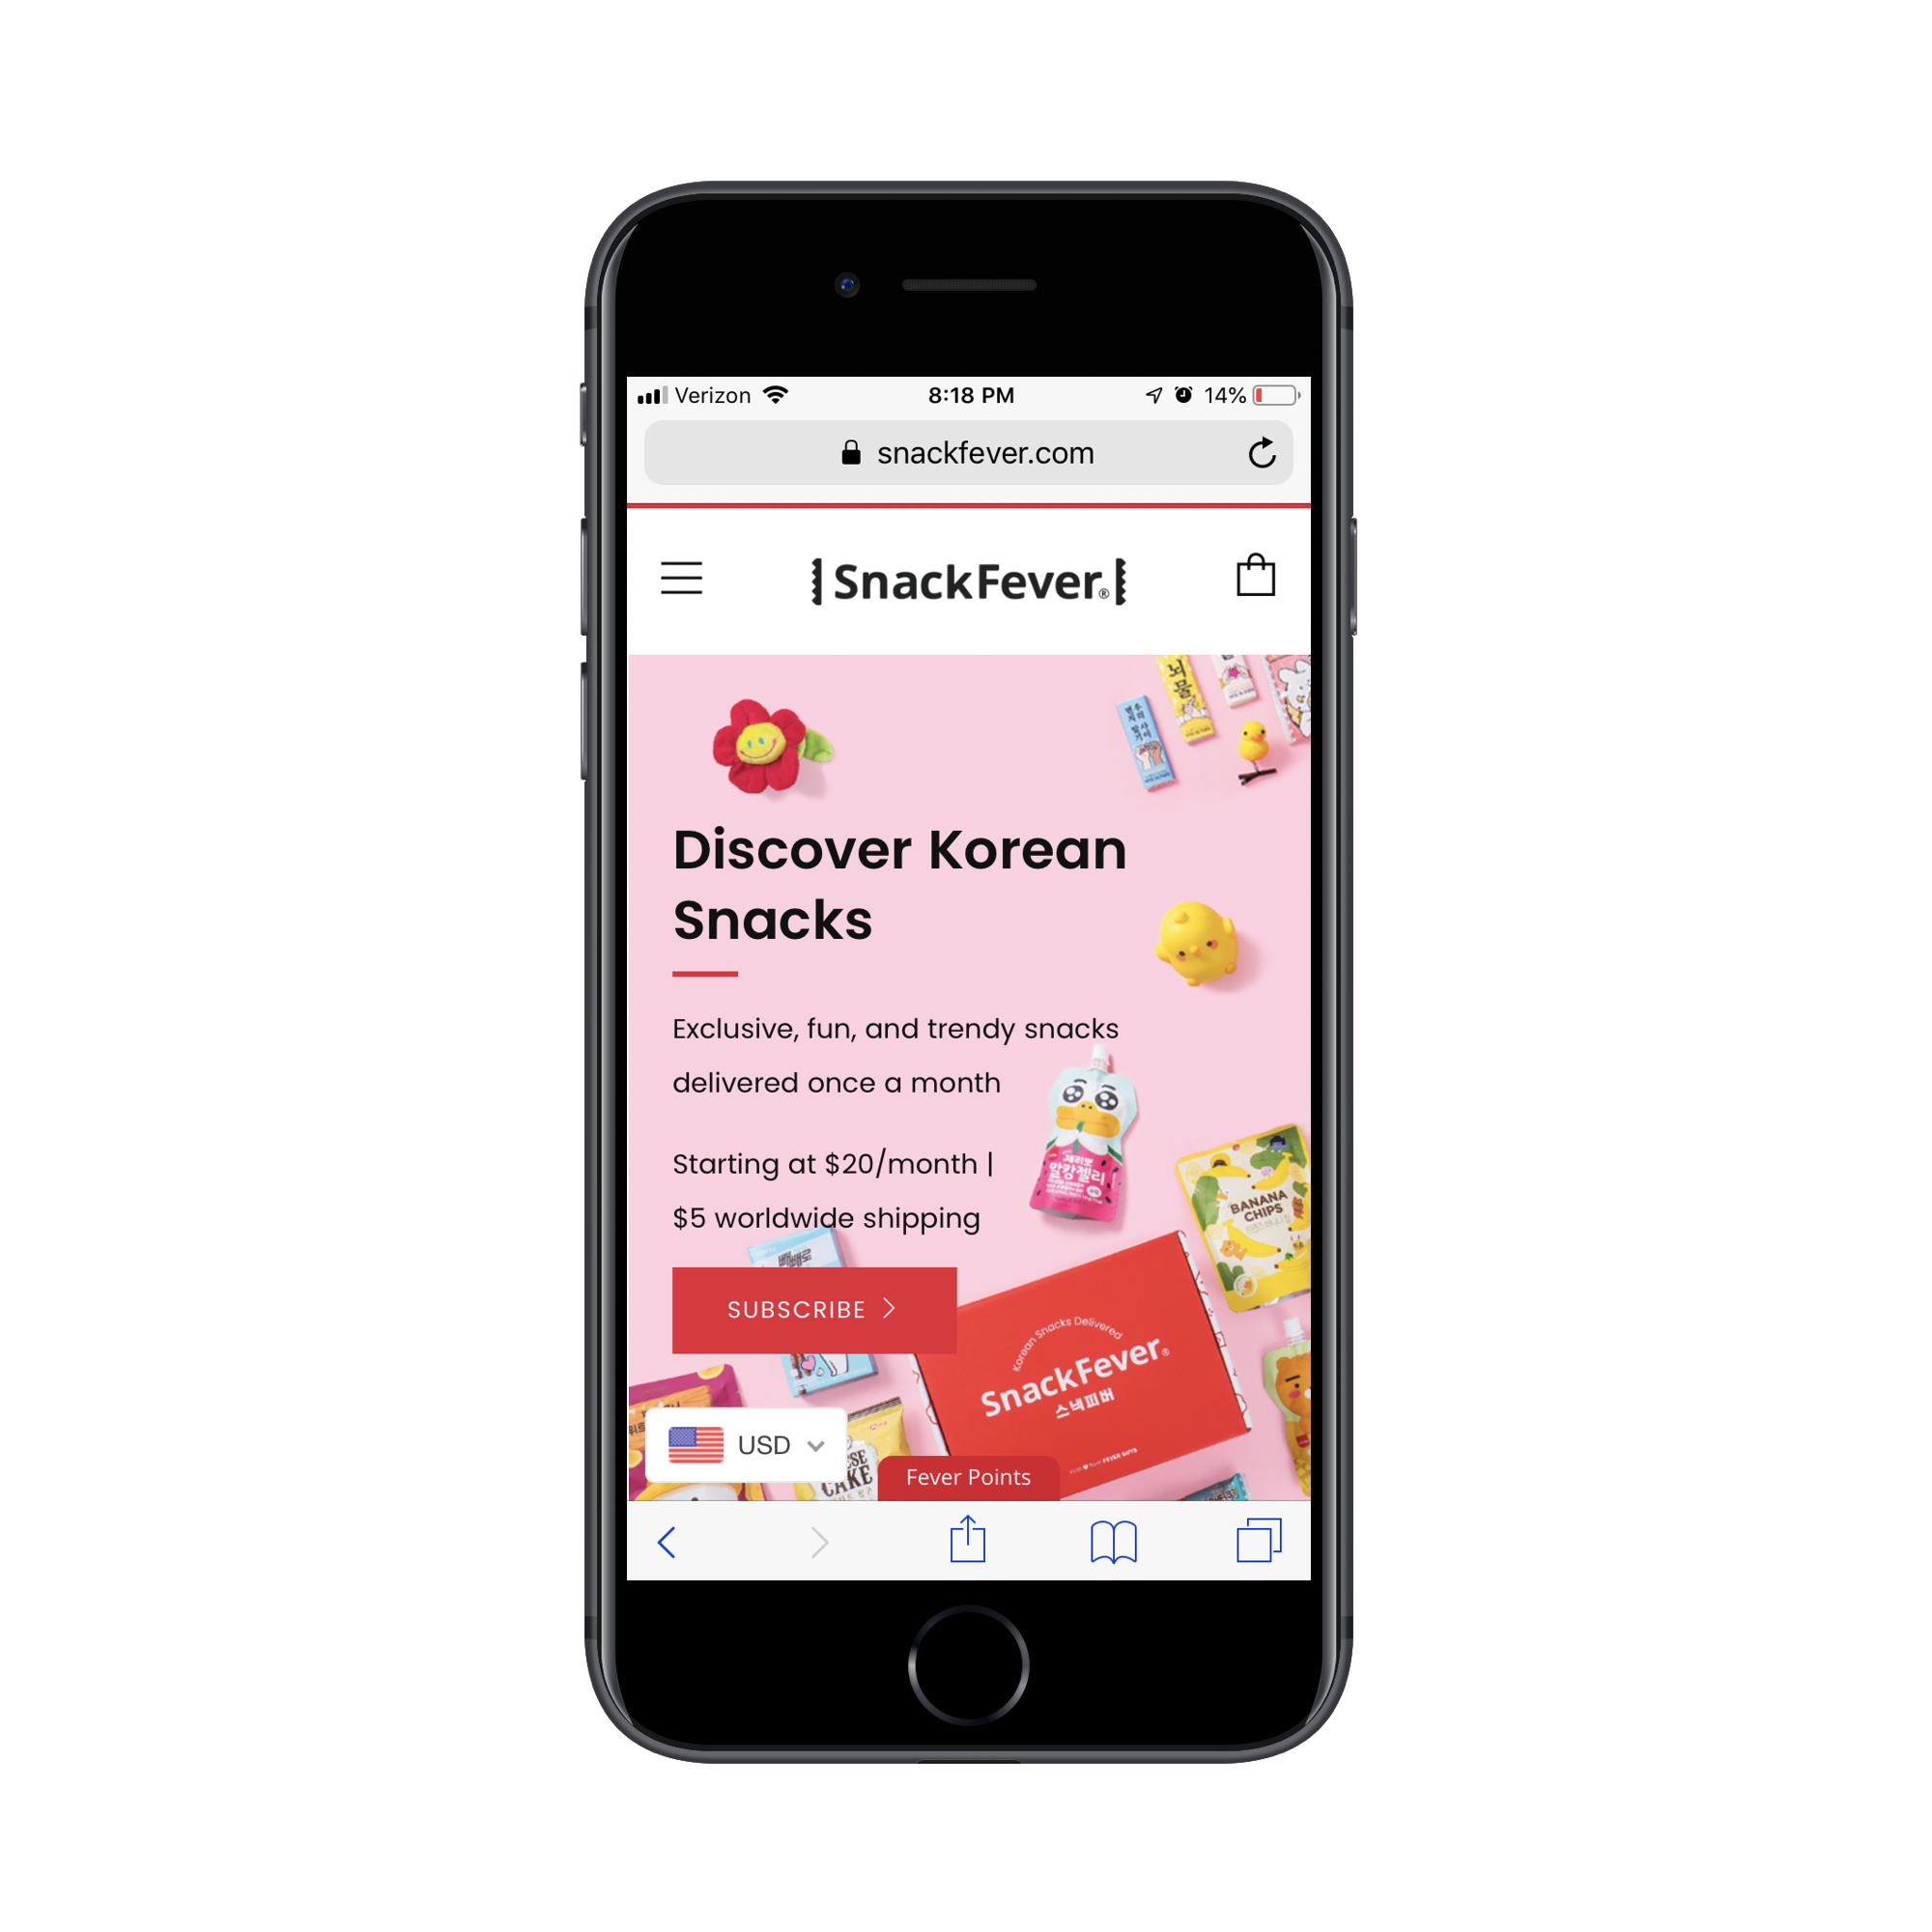 Design A Lead Gen Landing Page For Mobile That Converts — Smashing Magazine